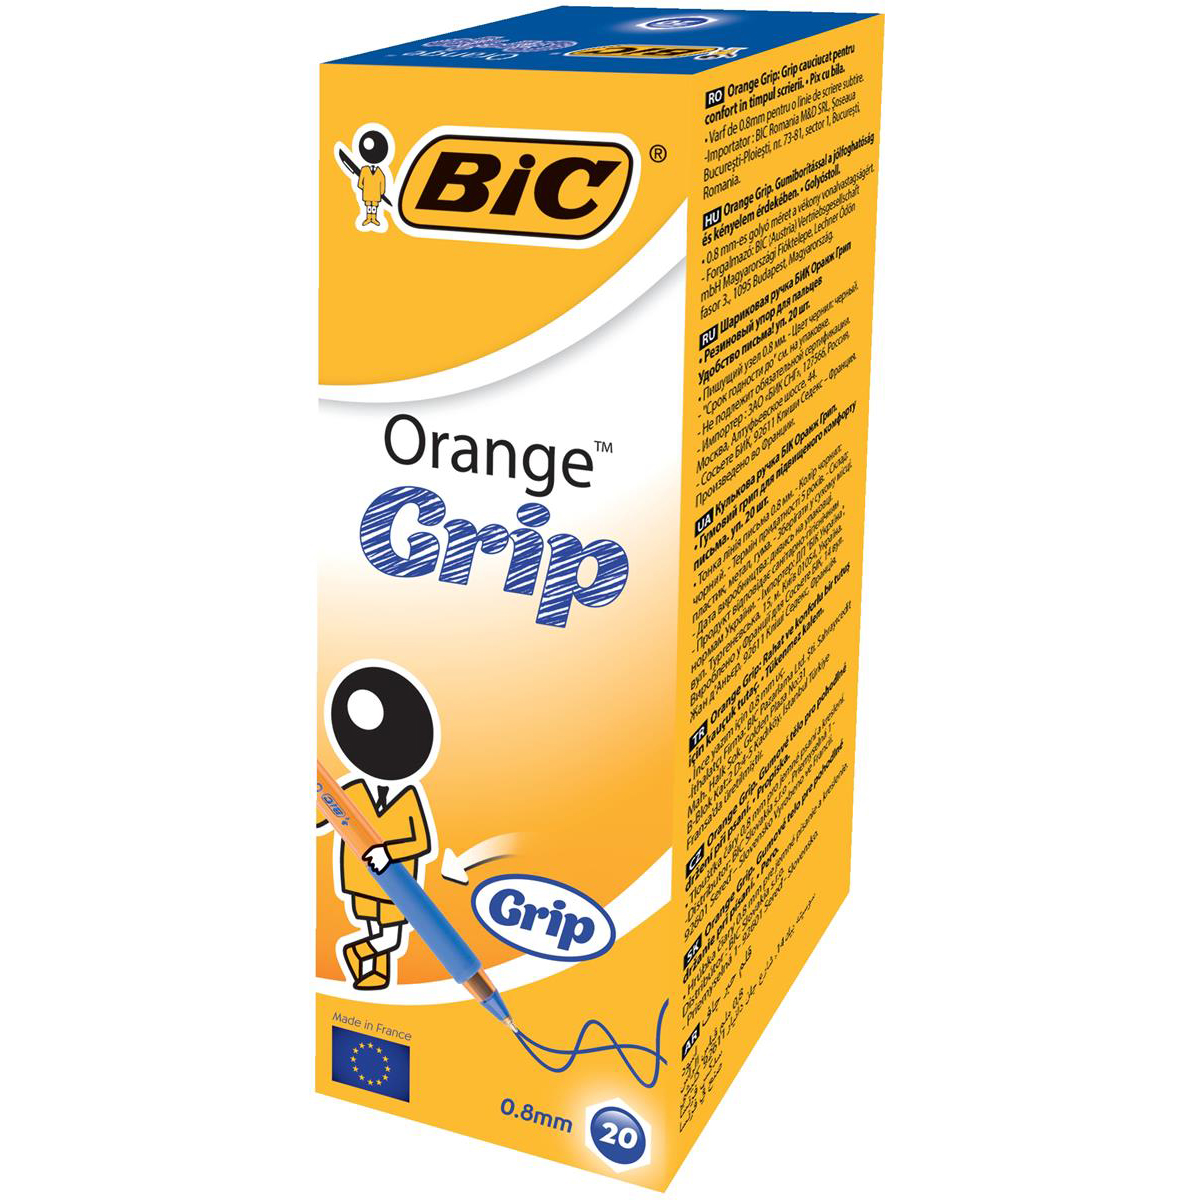 Bic Orange Grip Ball Pen Fine Translucent Barrel 0.8mm Tip 0.3mm Line Blue Ref 811926 [Pack 20]